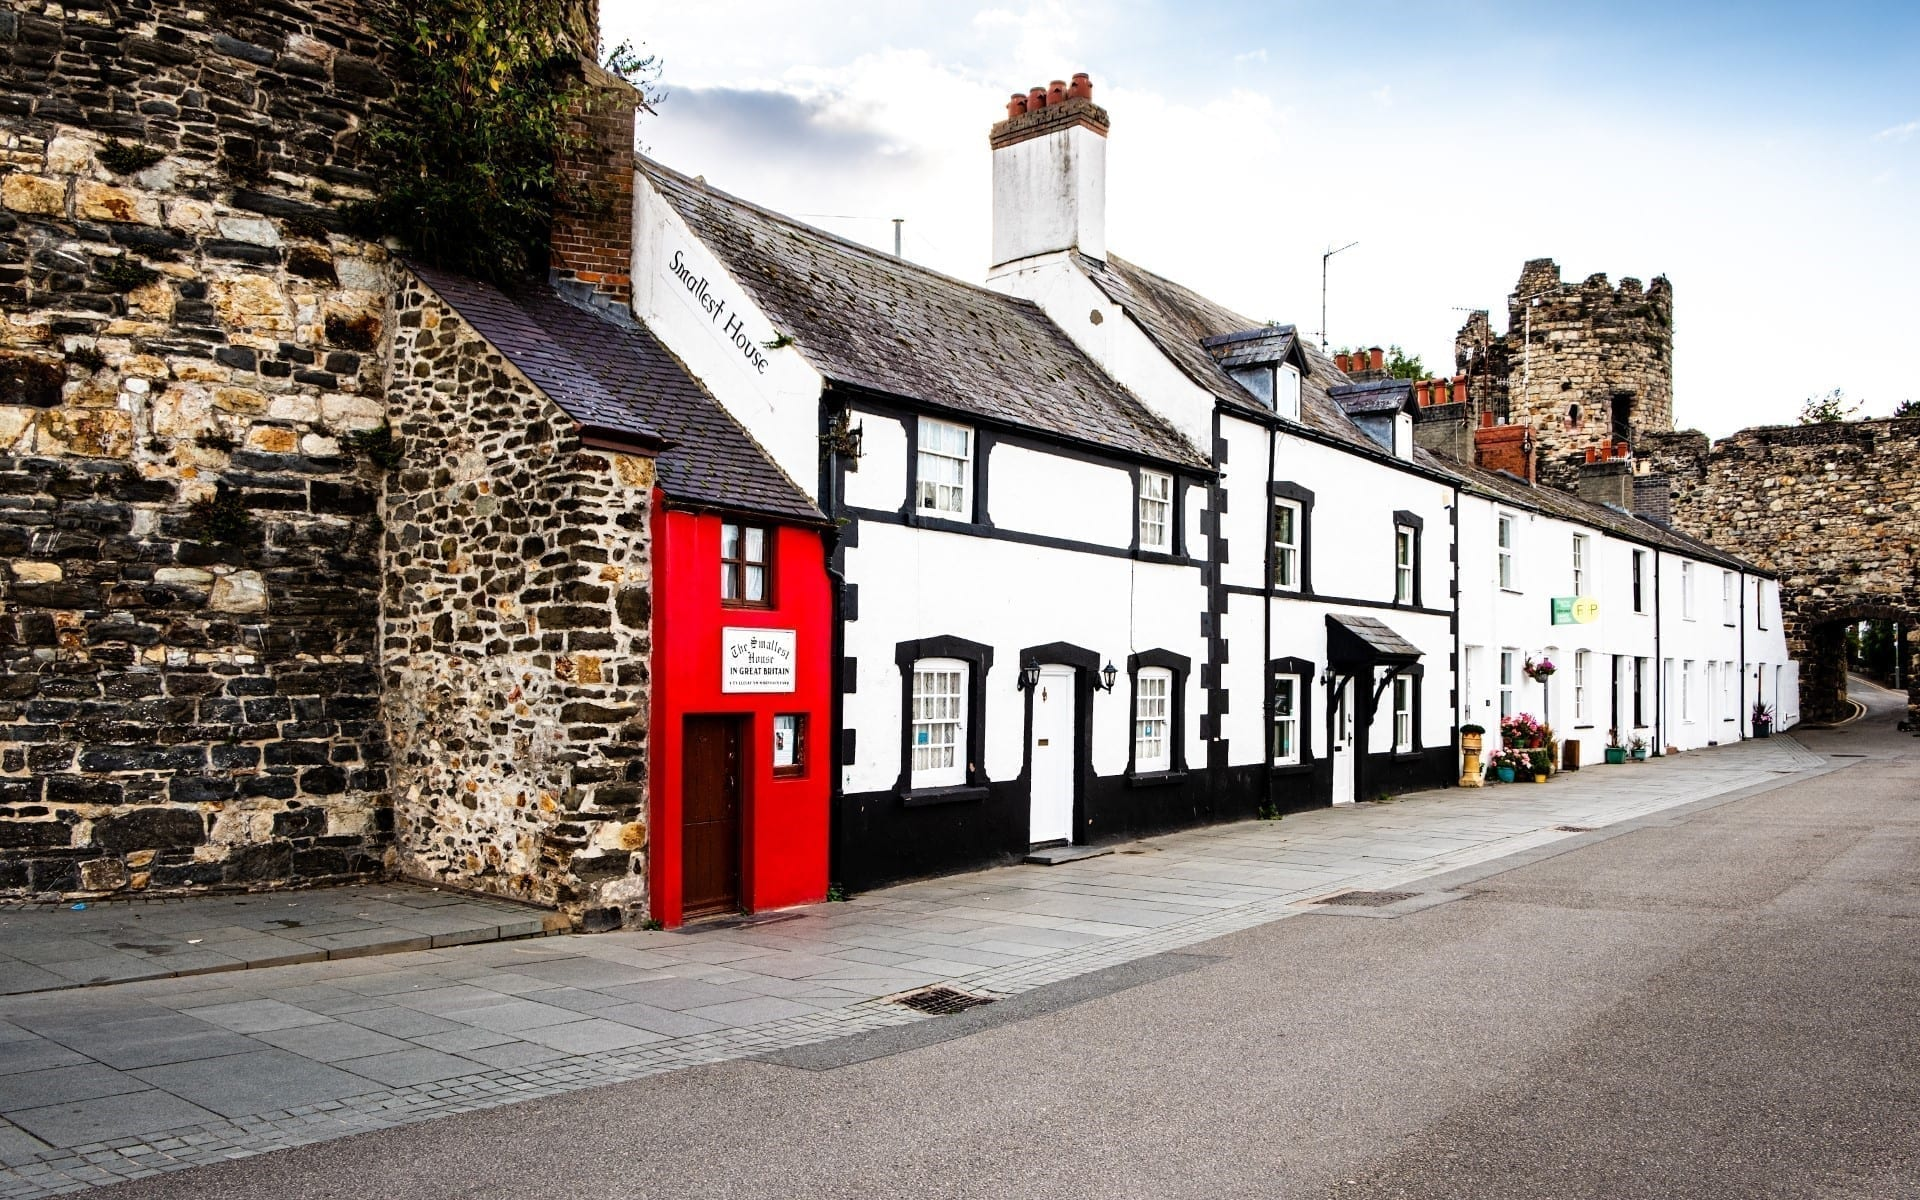 Quay House – the smallest house in Great Britain